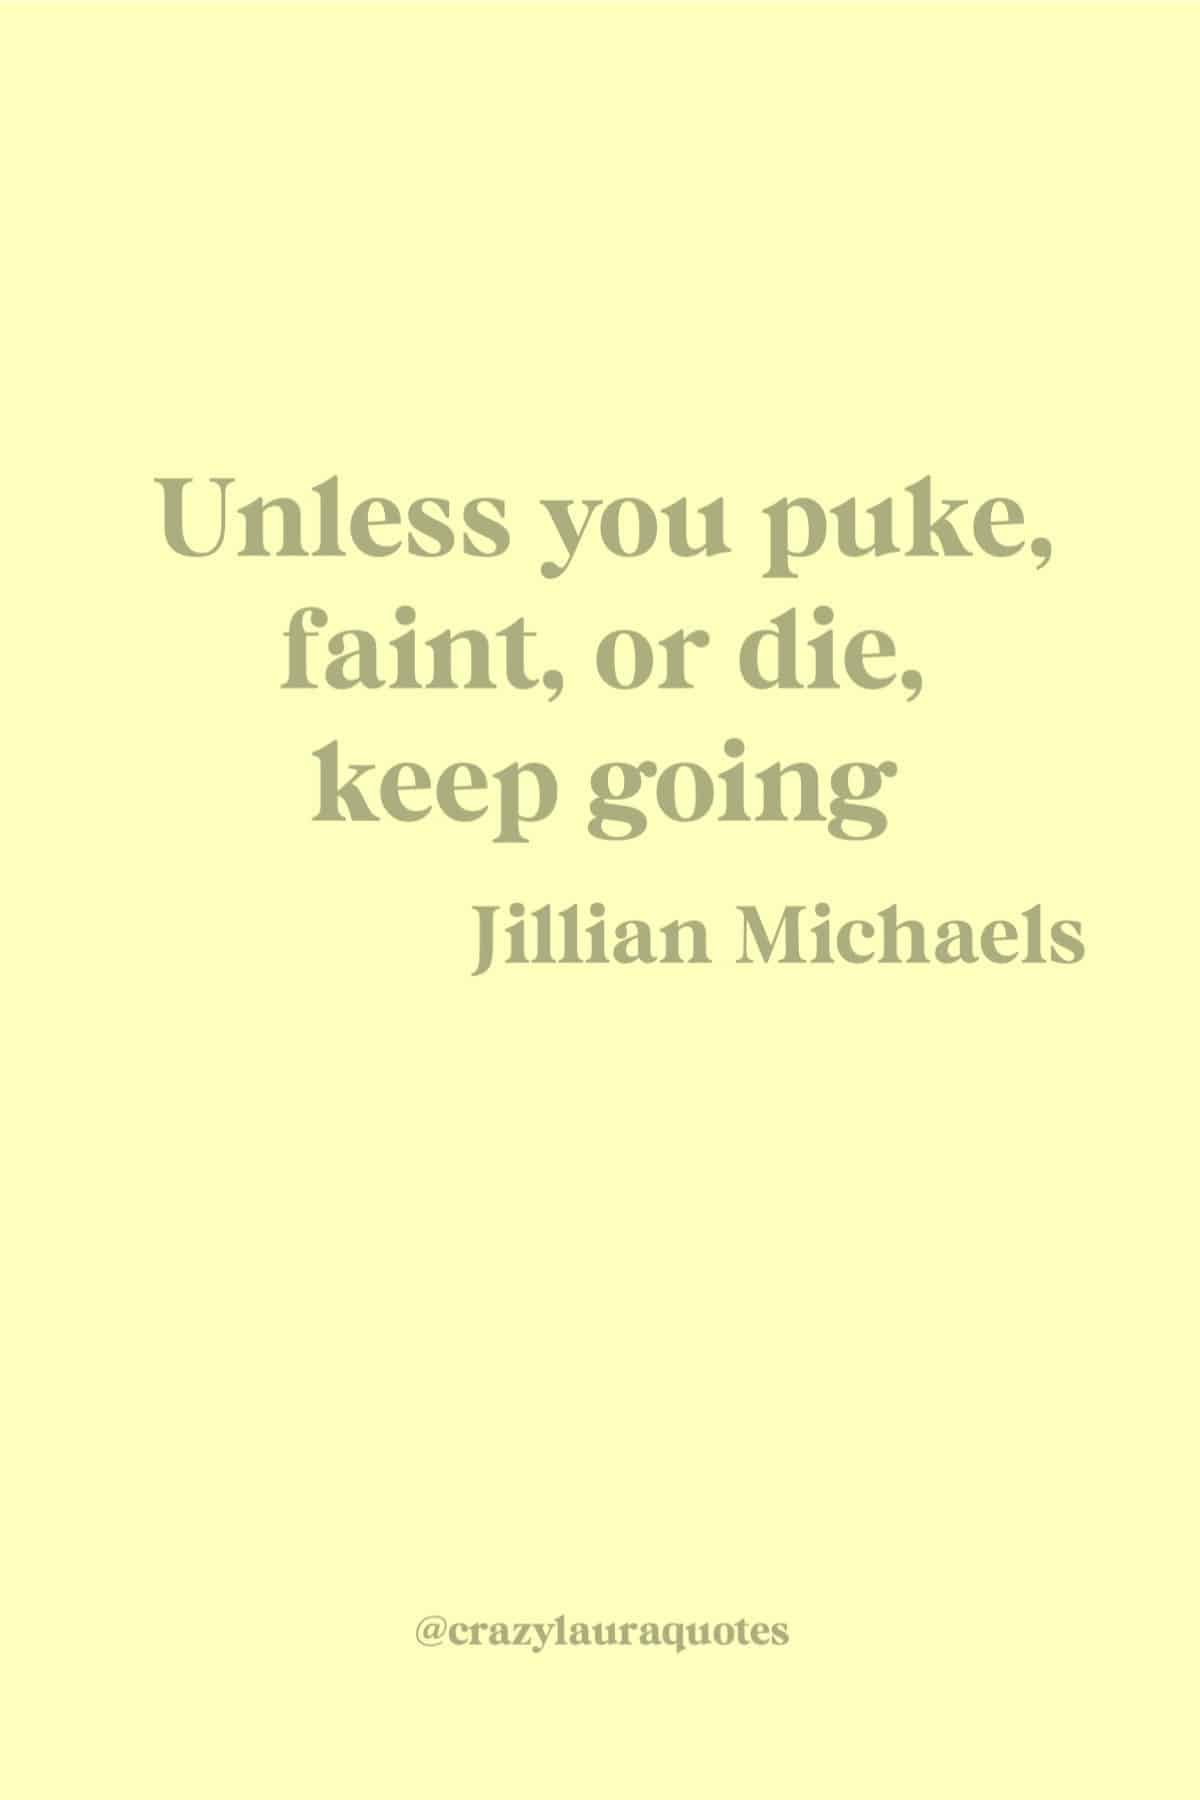 jillian michaels motivational fitness quote